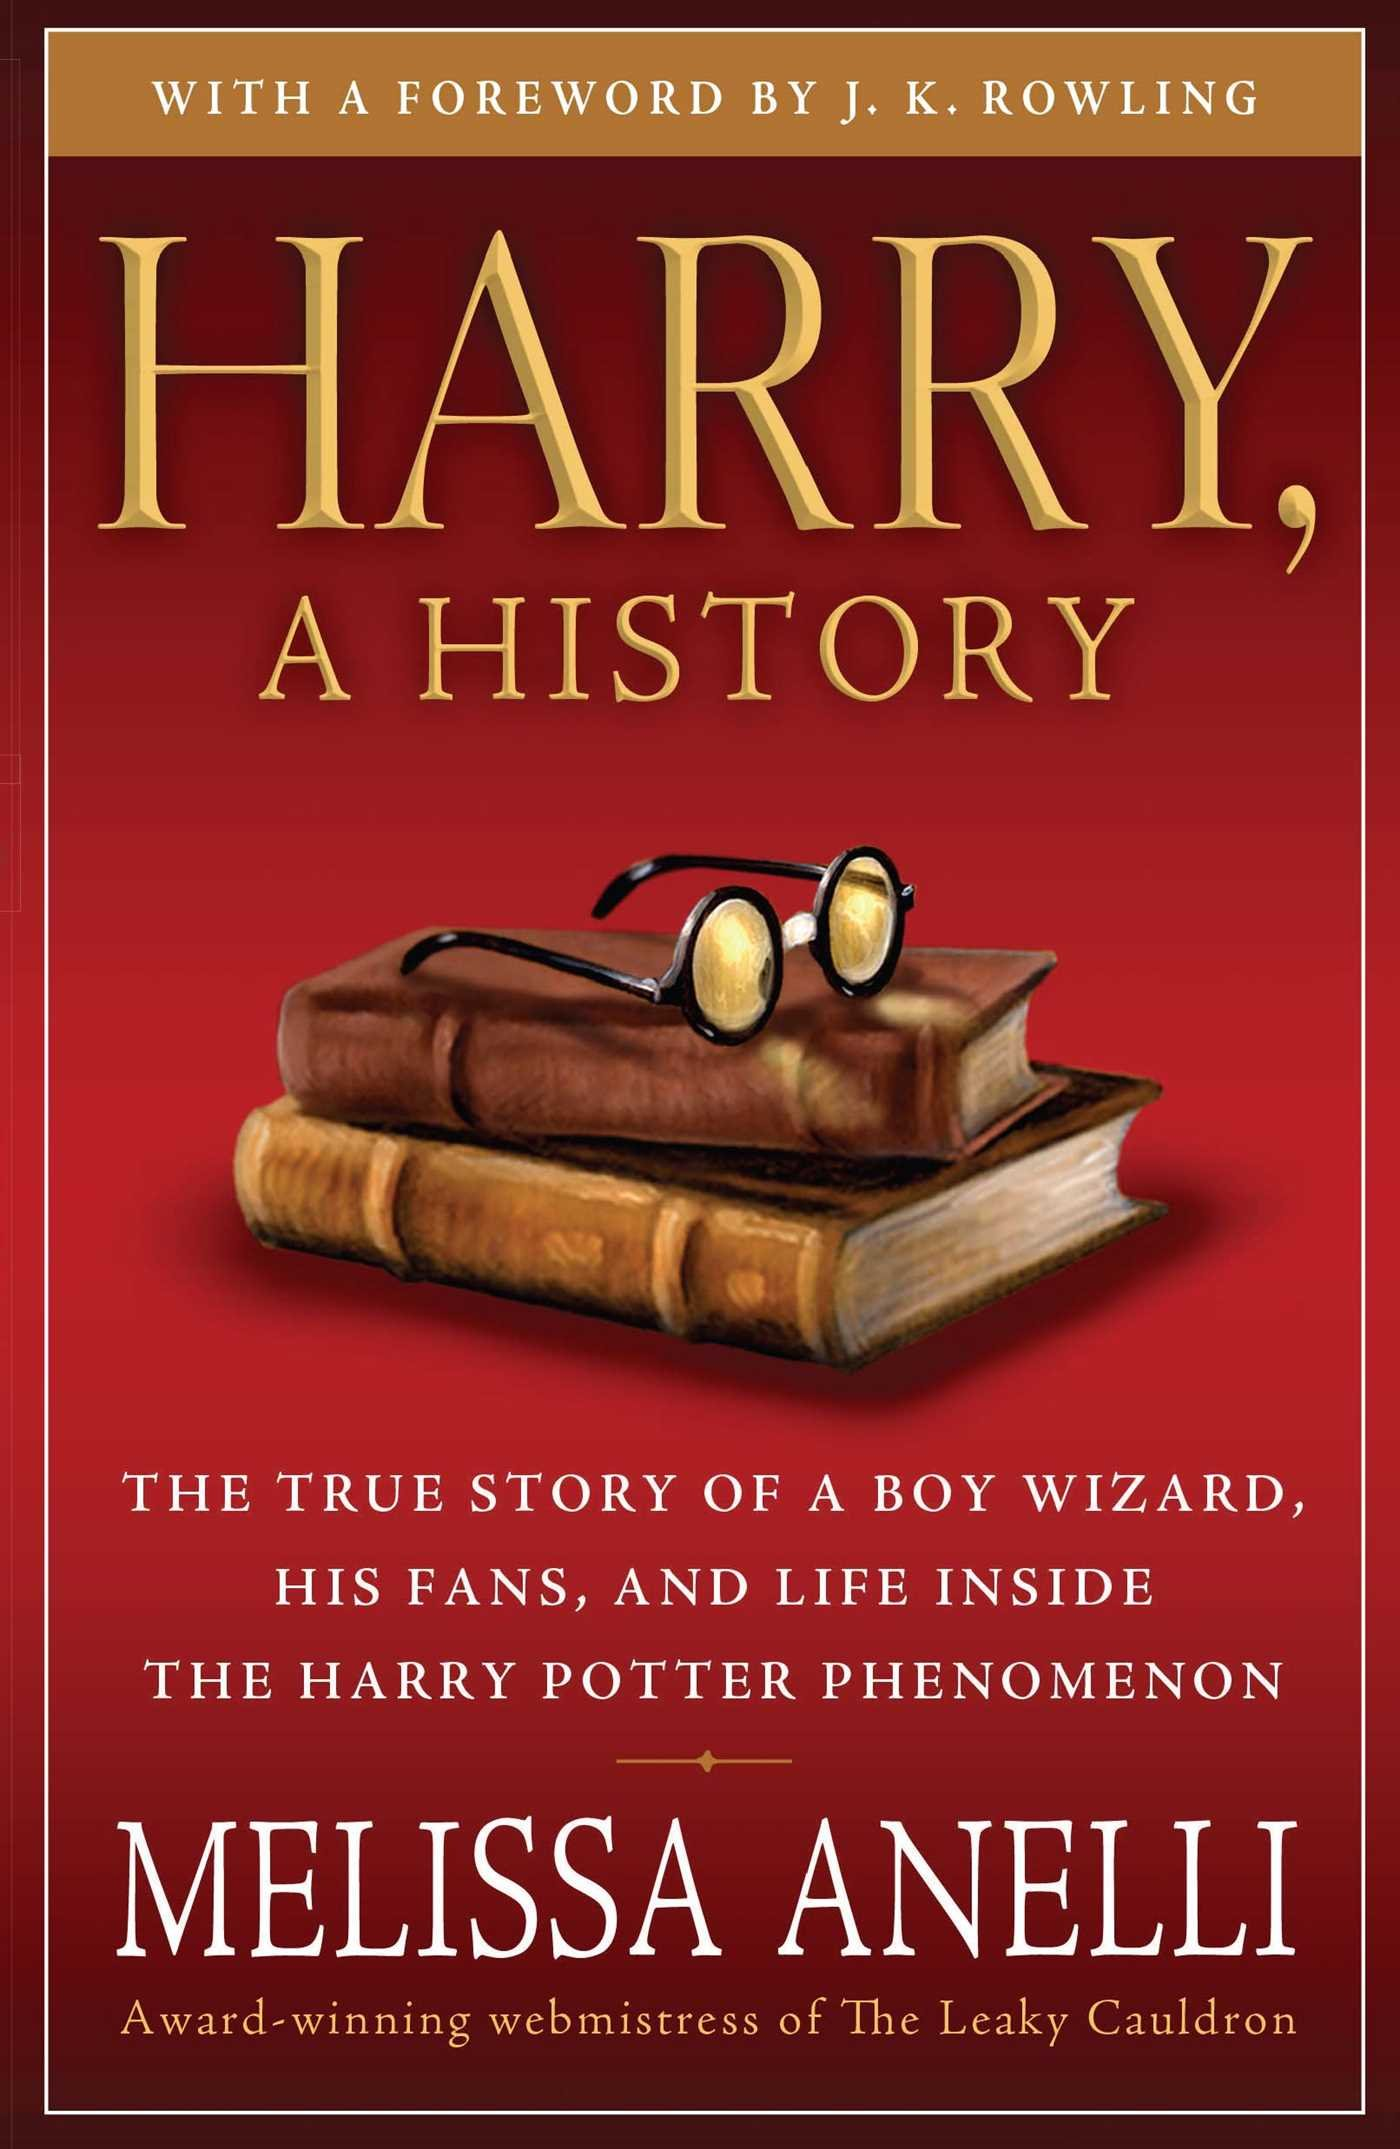 Harry, A History: The True Story of a Boy Wizard, His Fans, and Life Inside the Harry Potter Phenomenon ebook